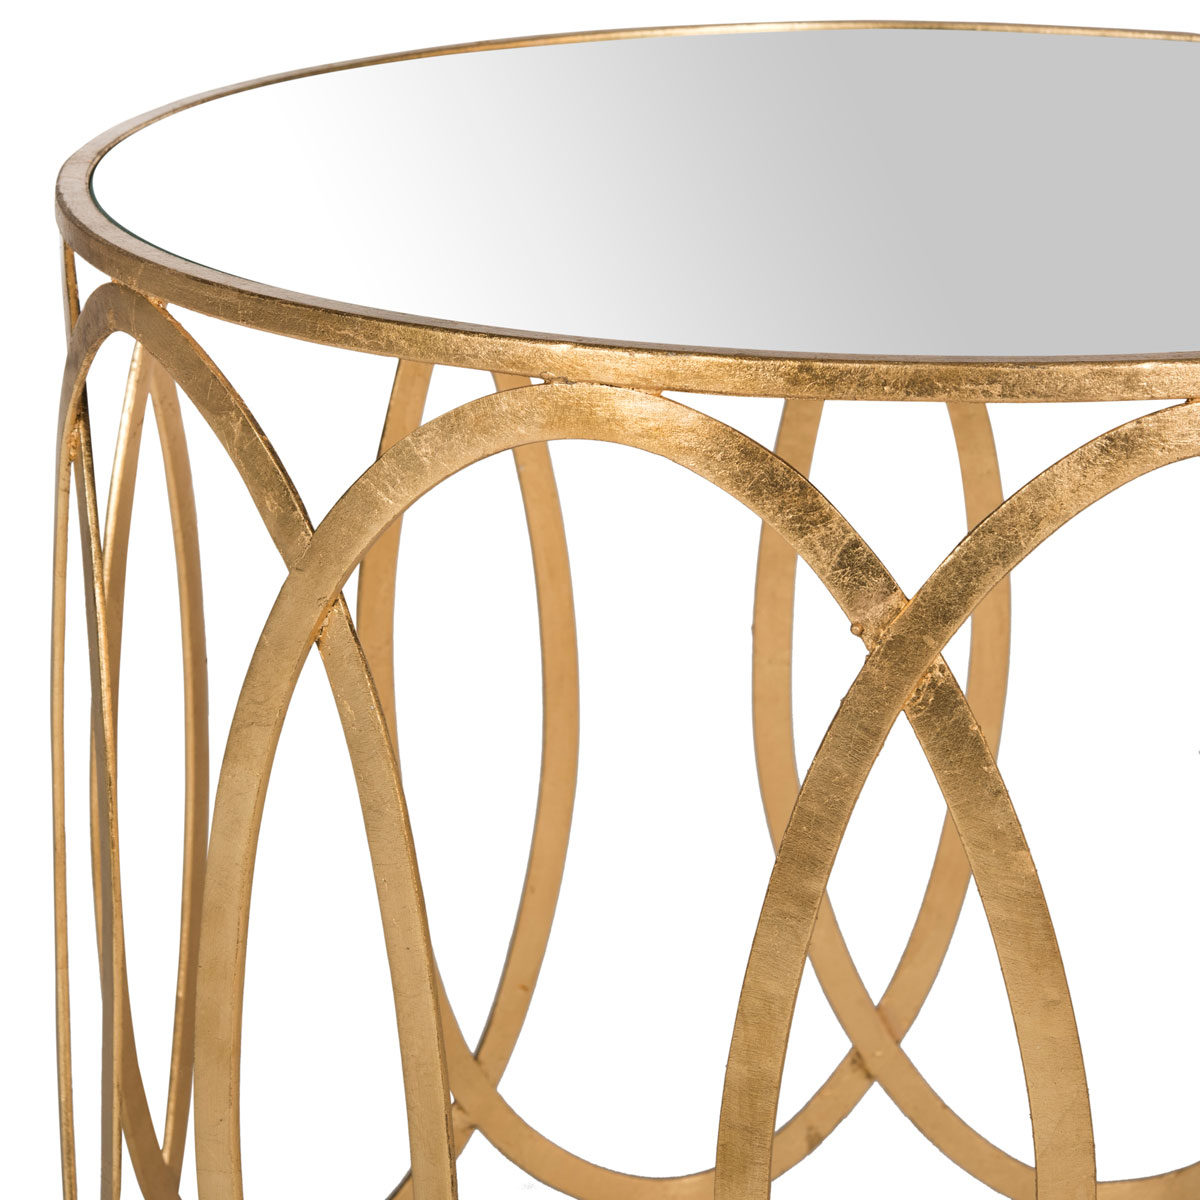 gold accent table end tables safavieh detail share this product drum lamp shades vitra chair replica antique round pedestal canopy umbrella rustic metal and wood inch cement base